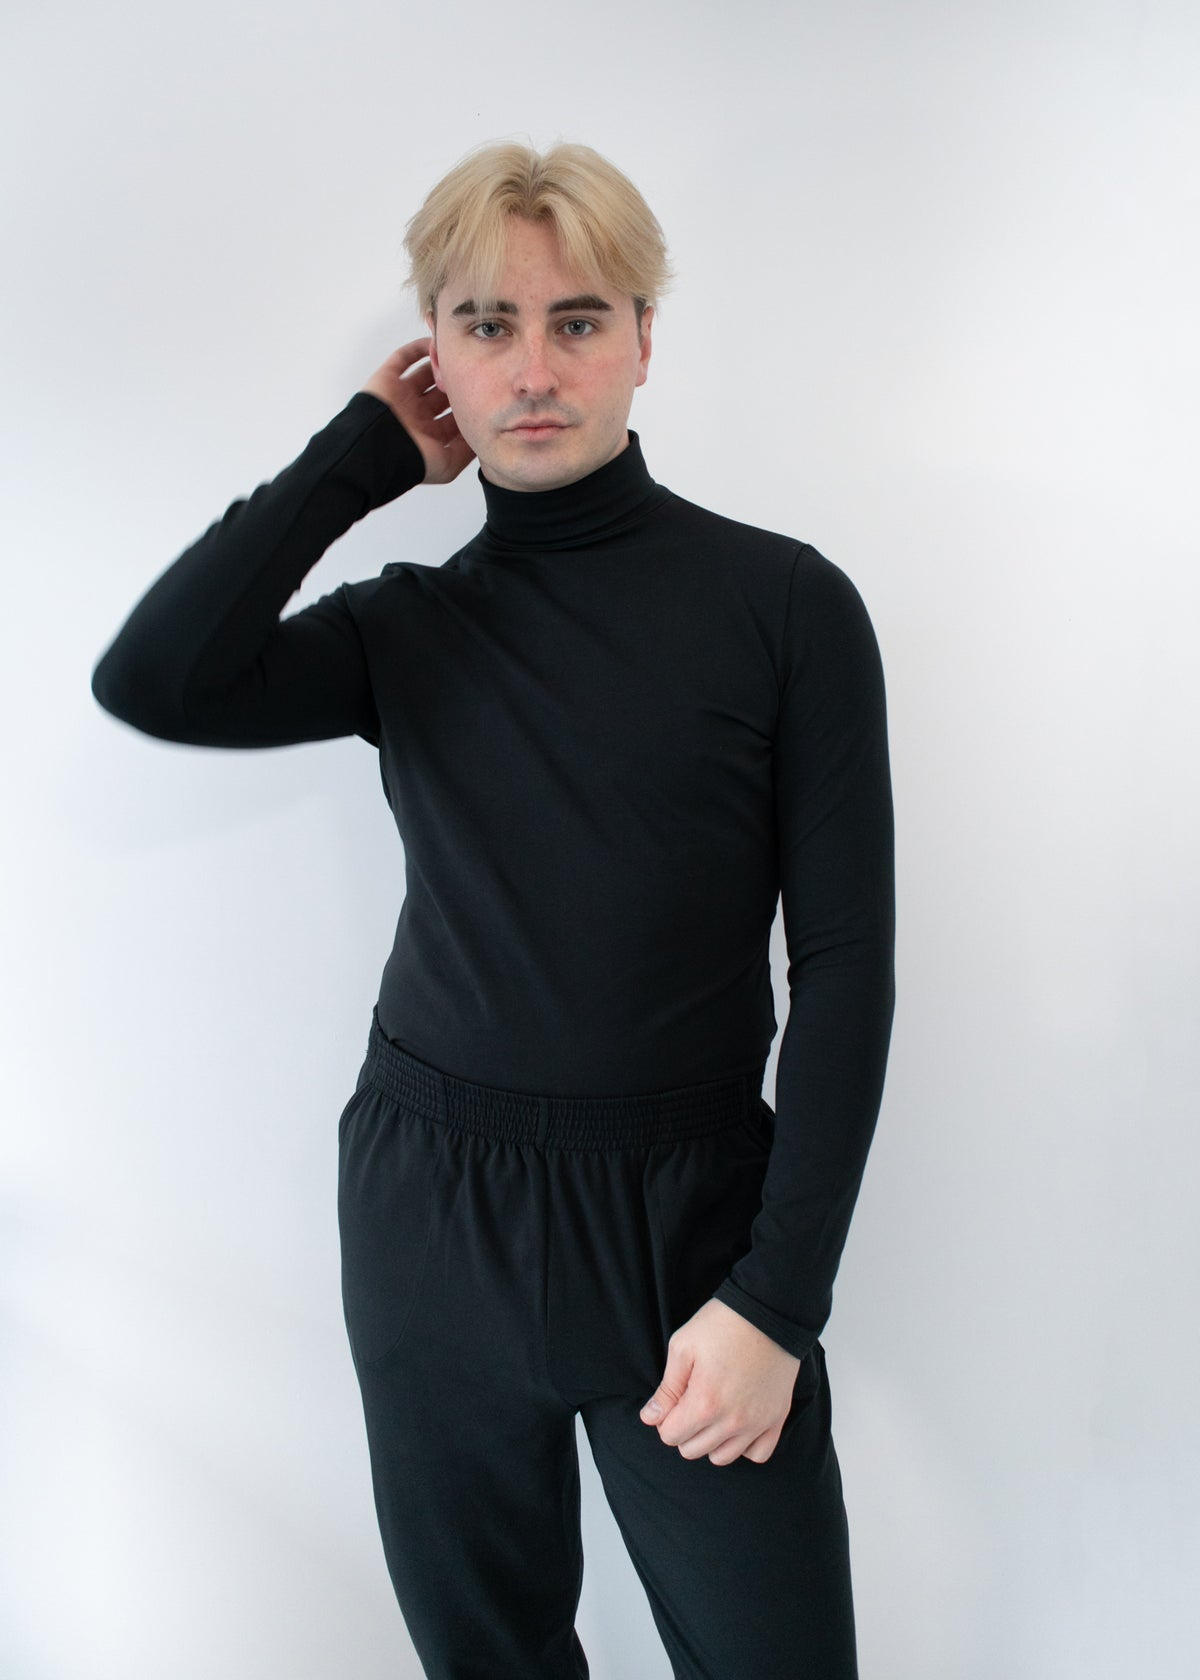 Stretch Turtleneck Coal - XS, S, M